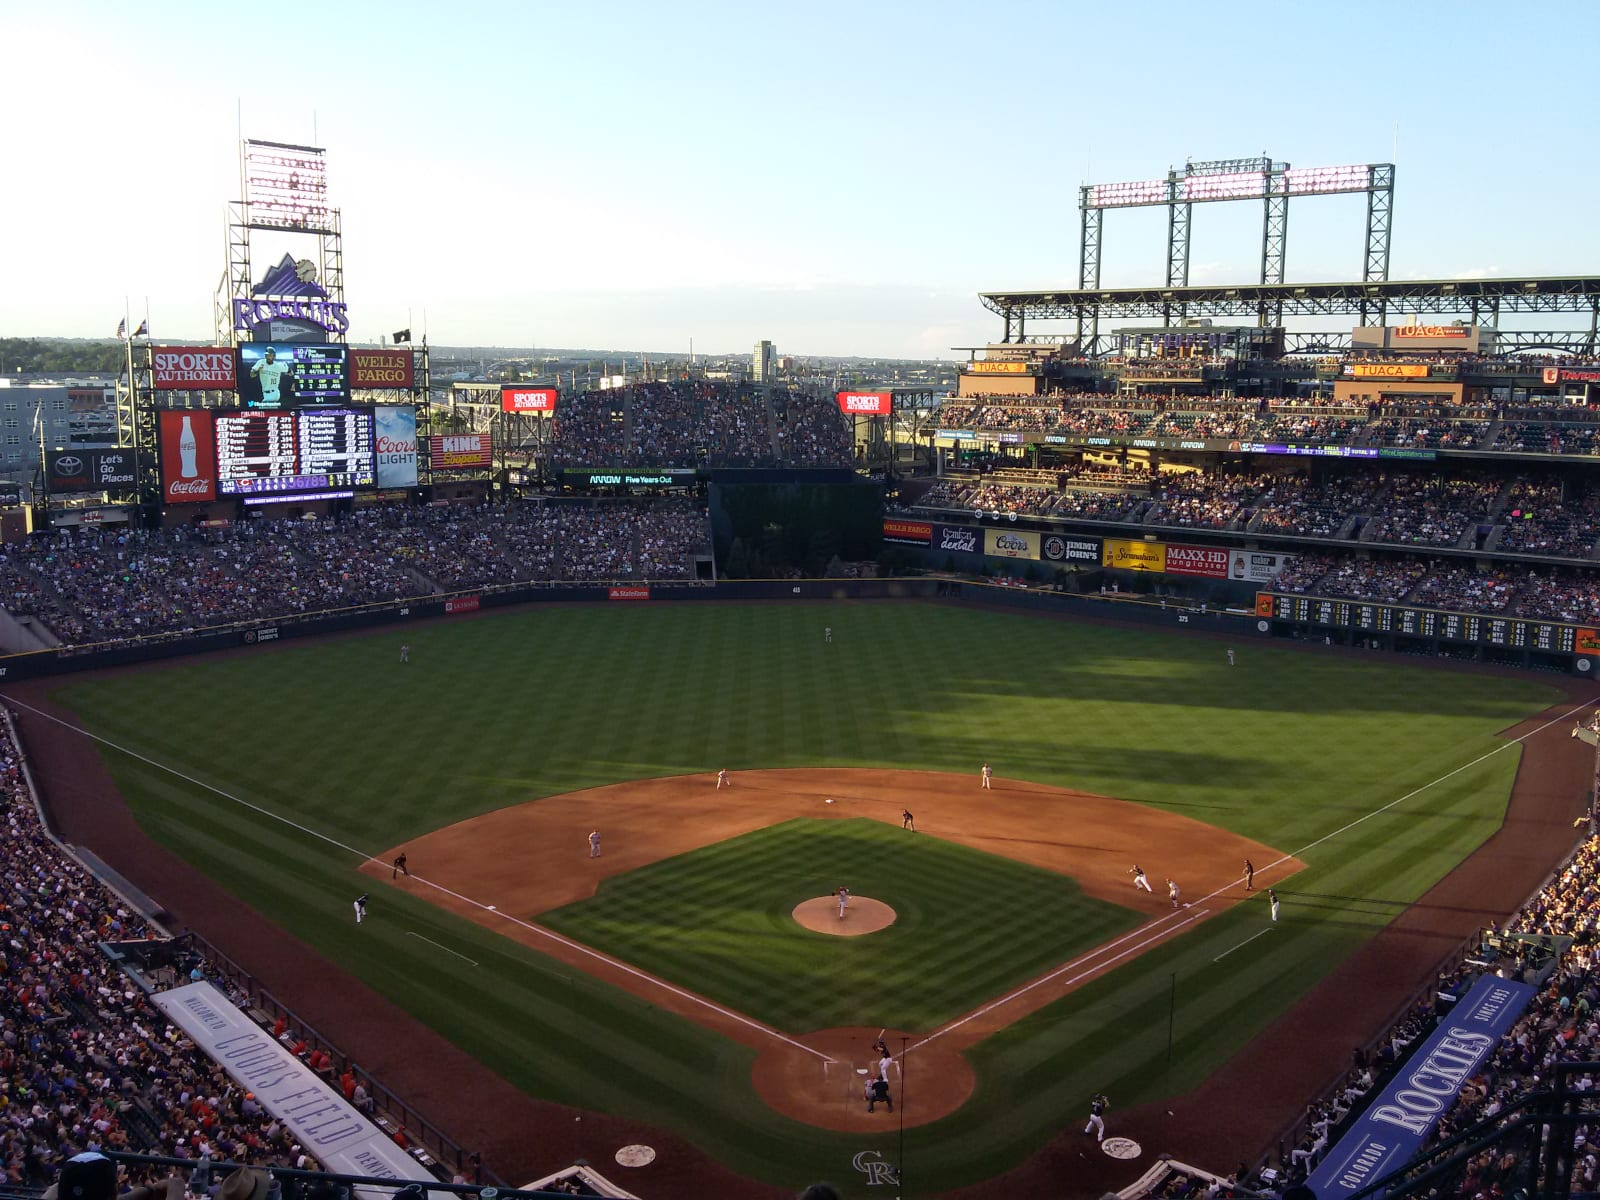 Coors Field Rockies vs Reds 2015